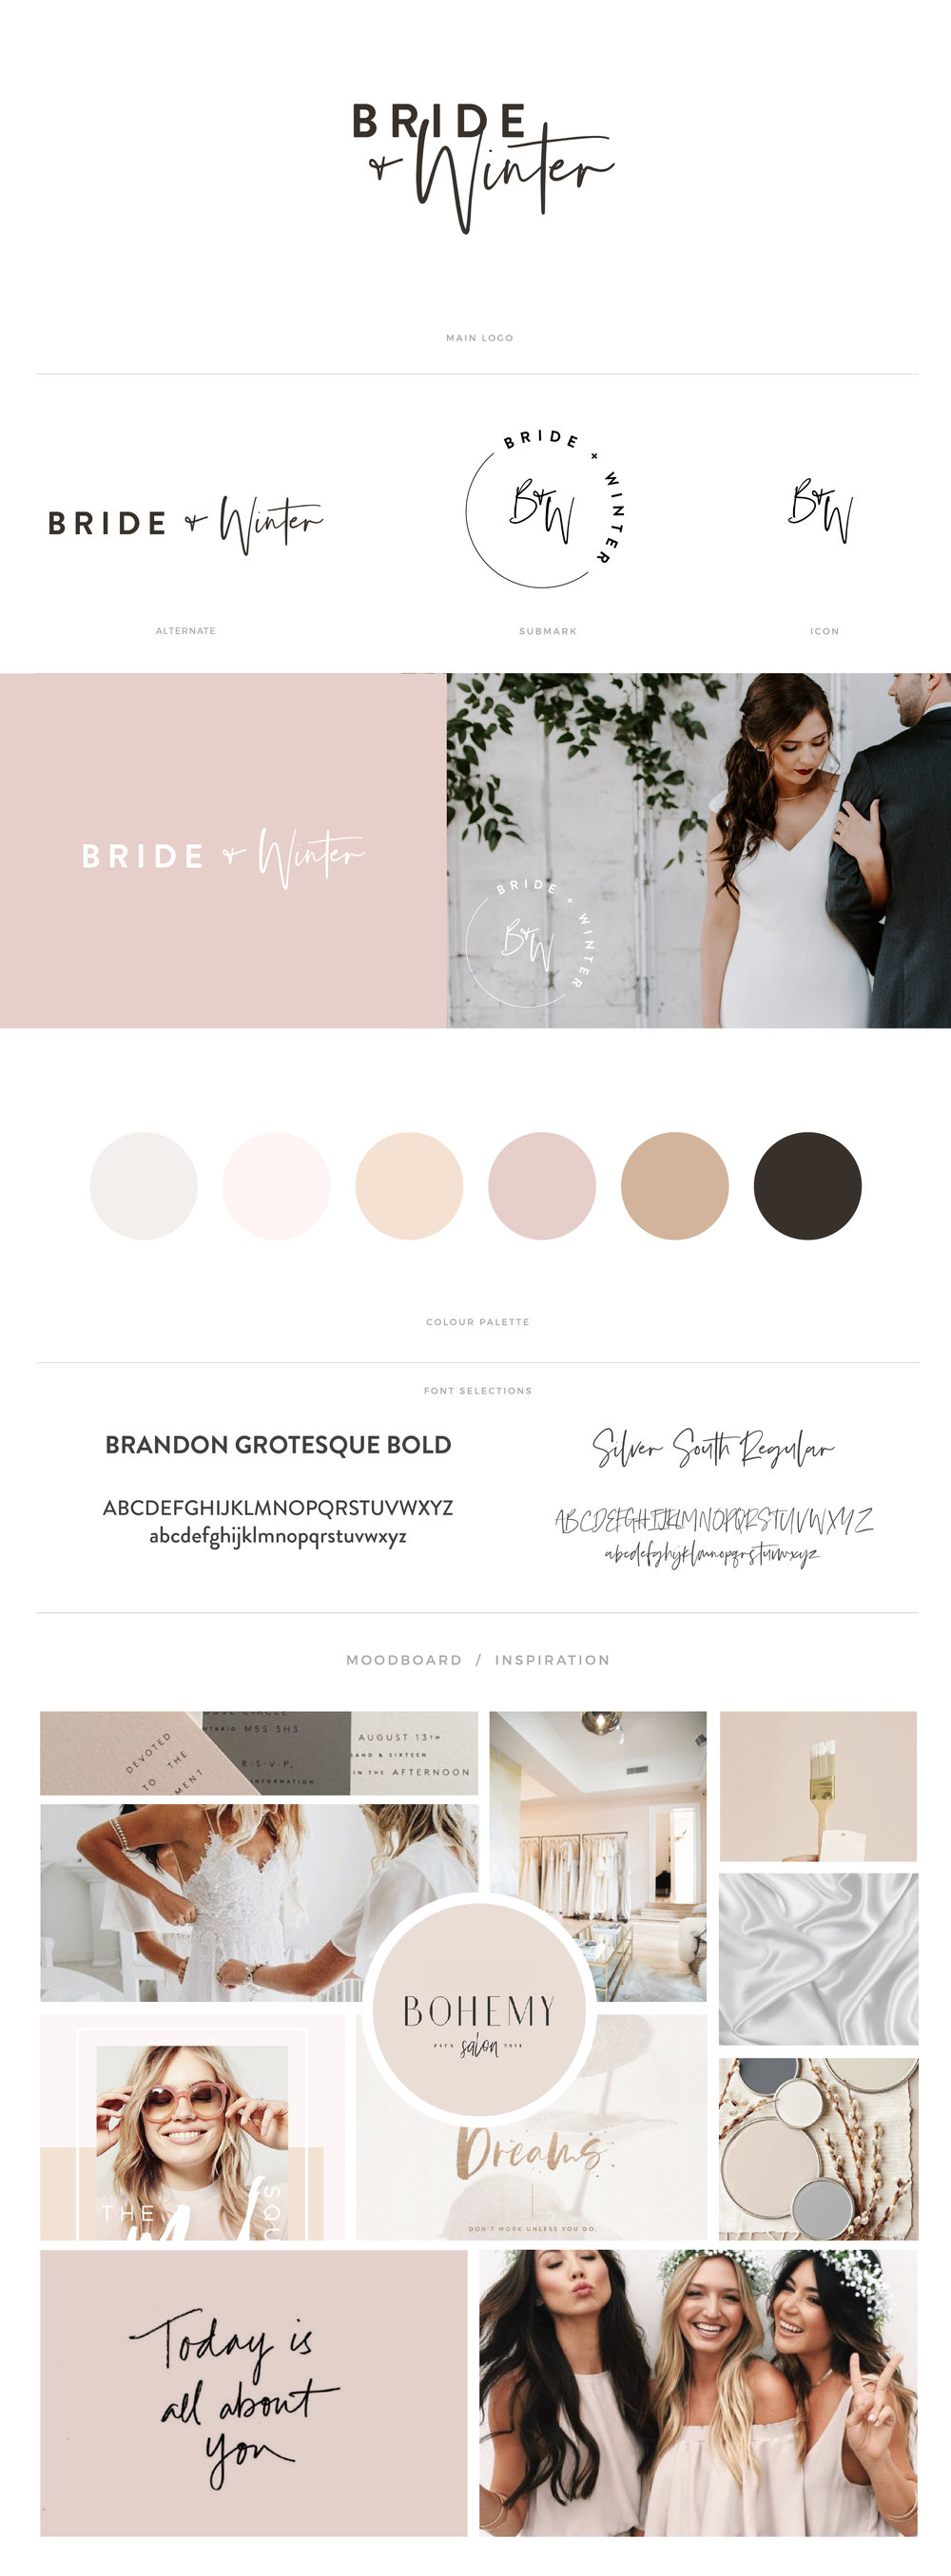 Bride & Winter by January Made Design